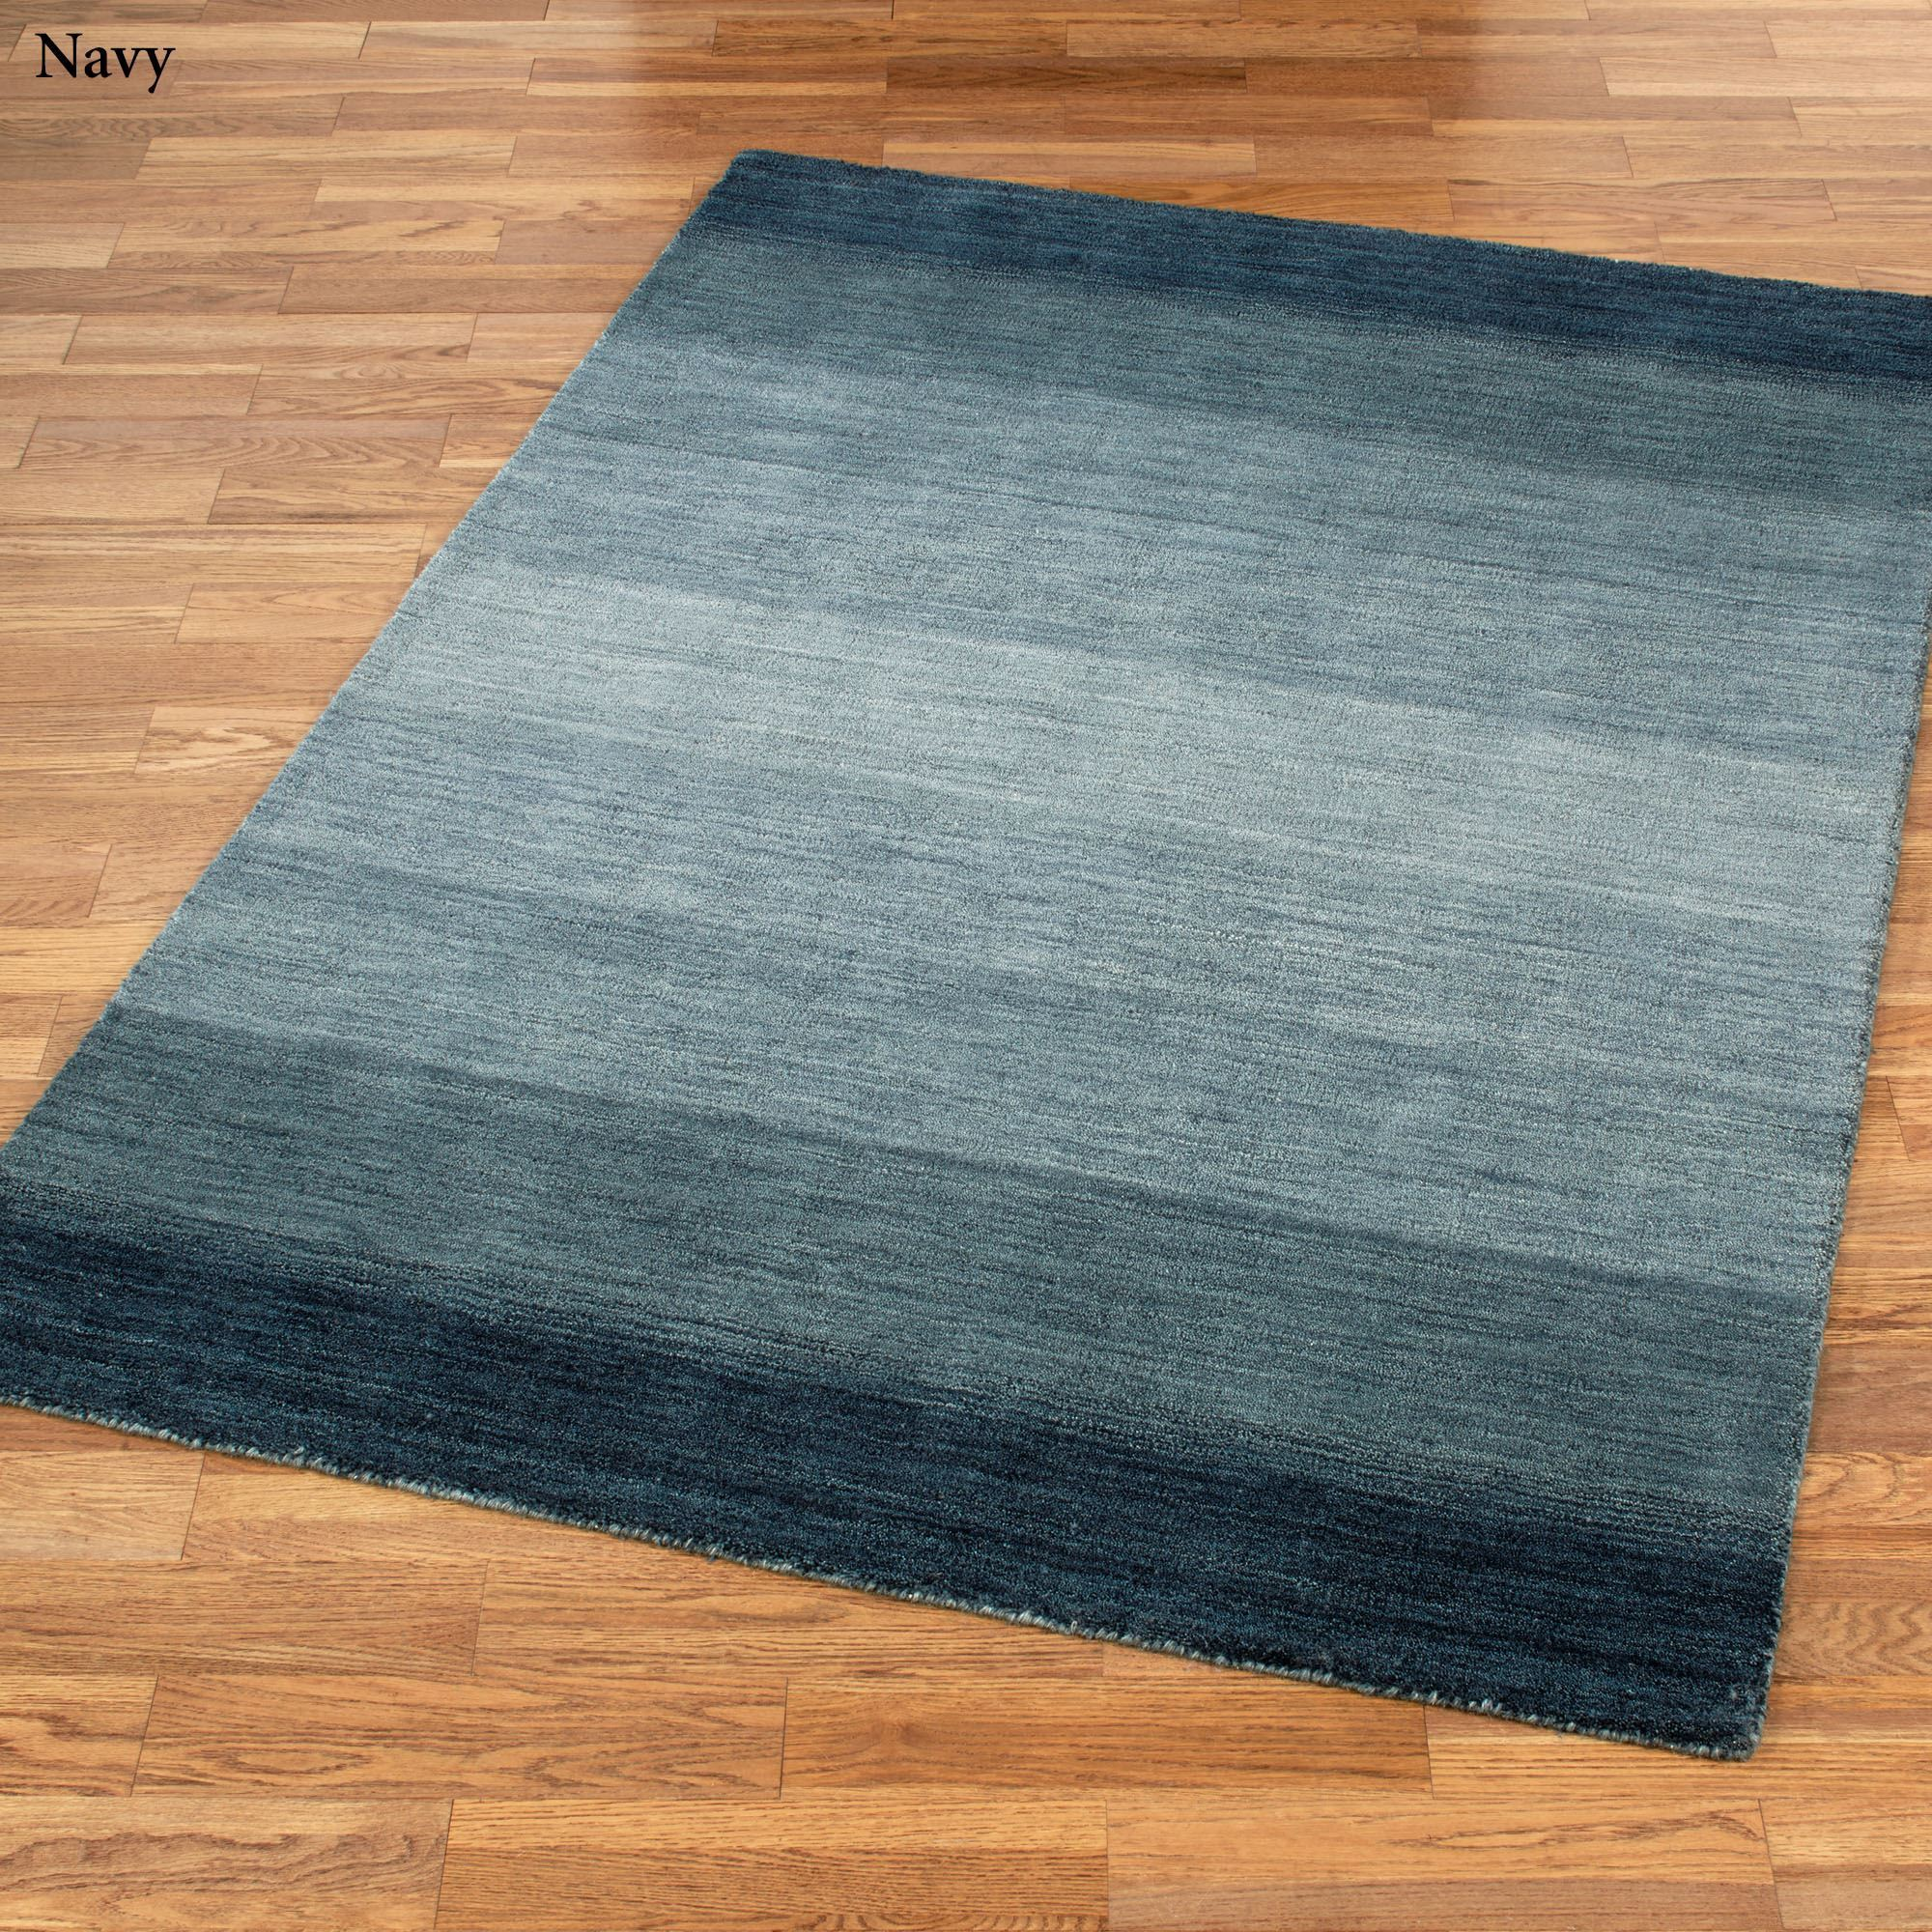 Blue Ombre Rug Rugs Ideas